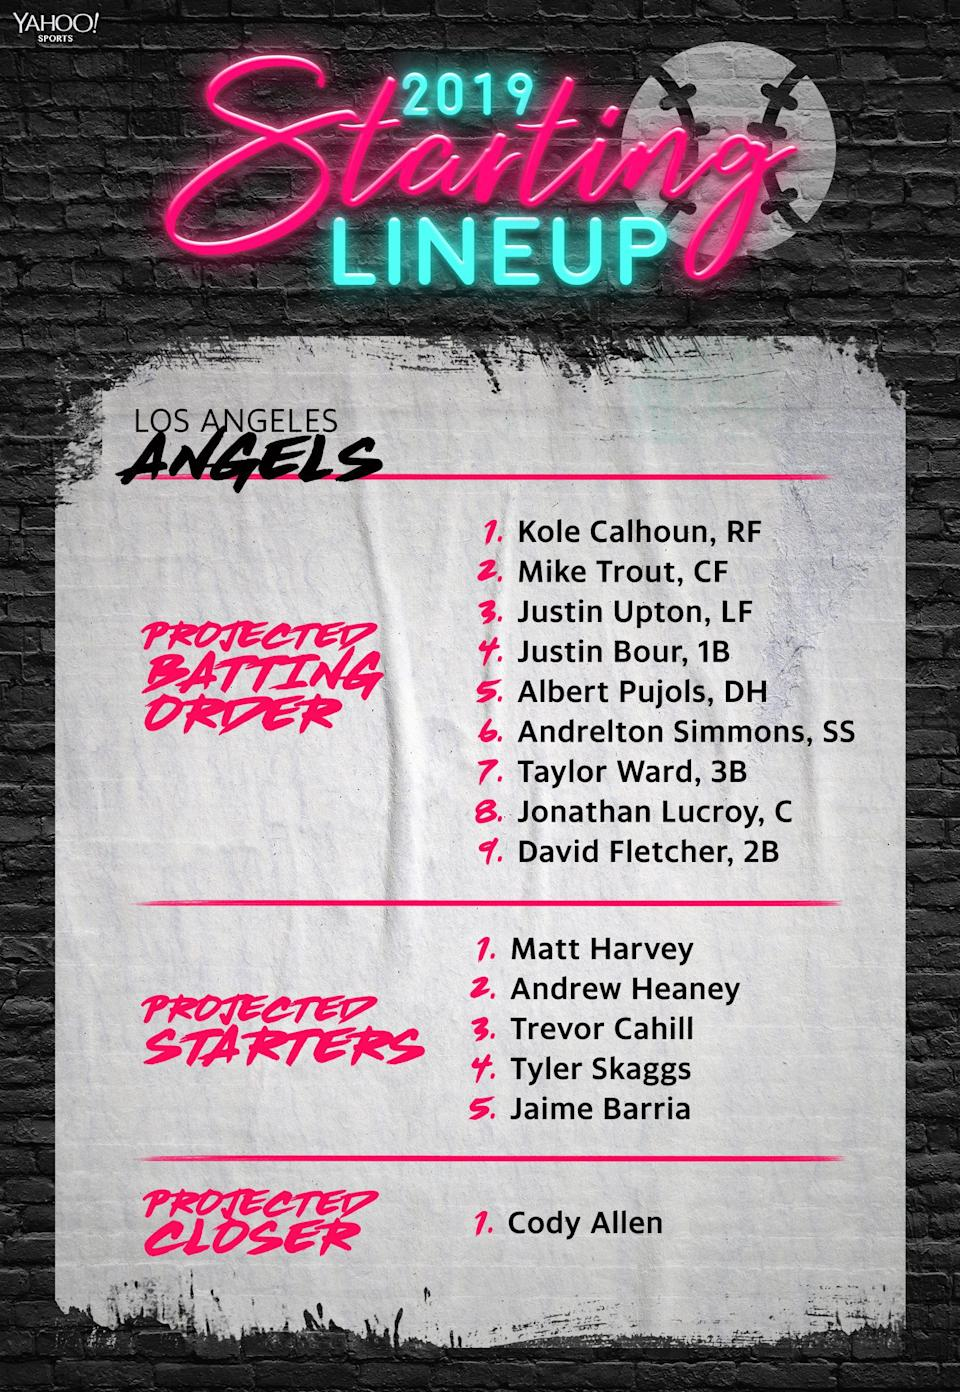 The Angels projected lineup for 2019. (Yahoo Sports)